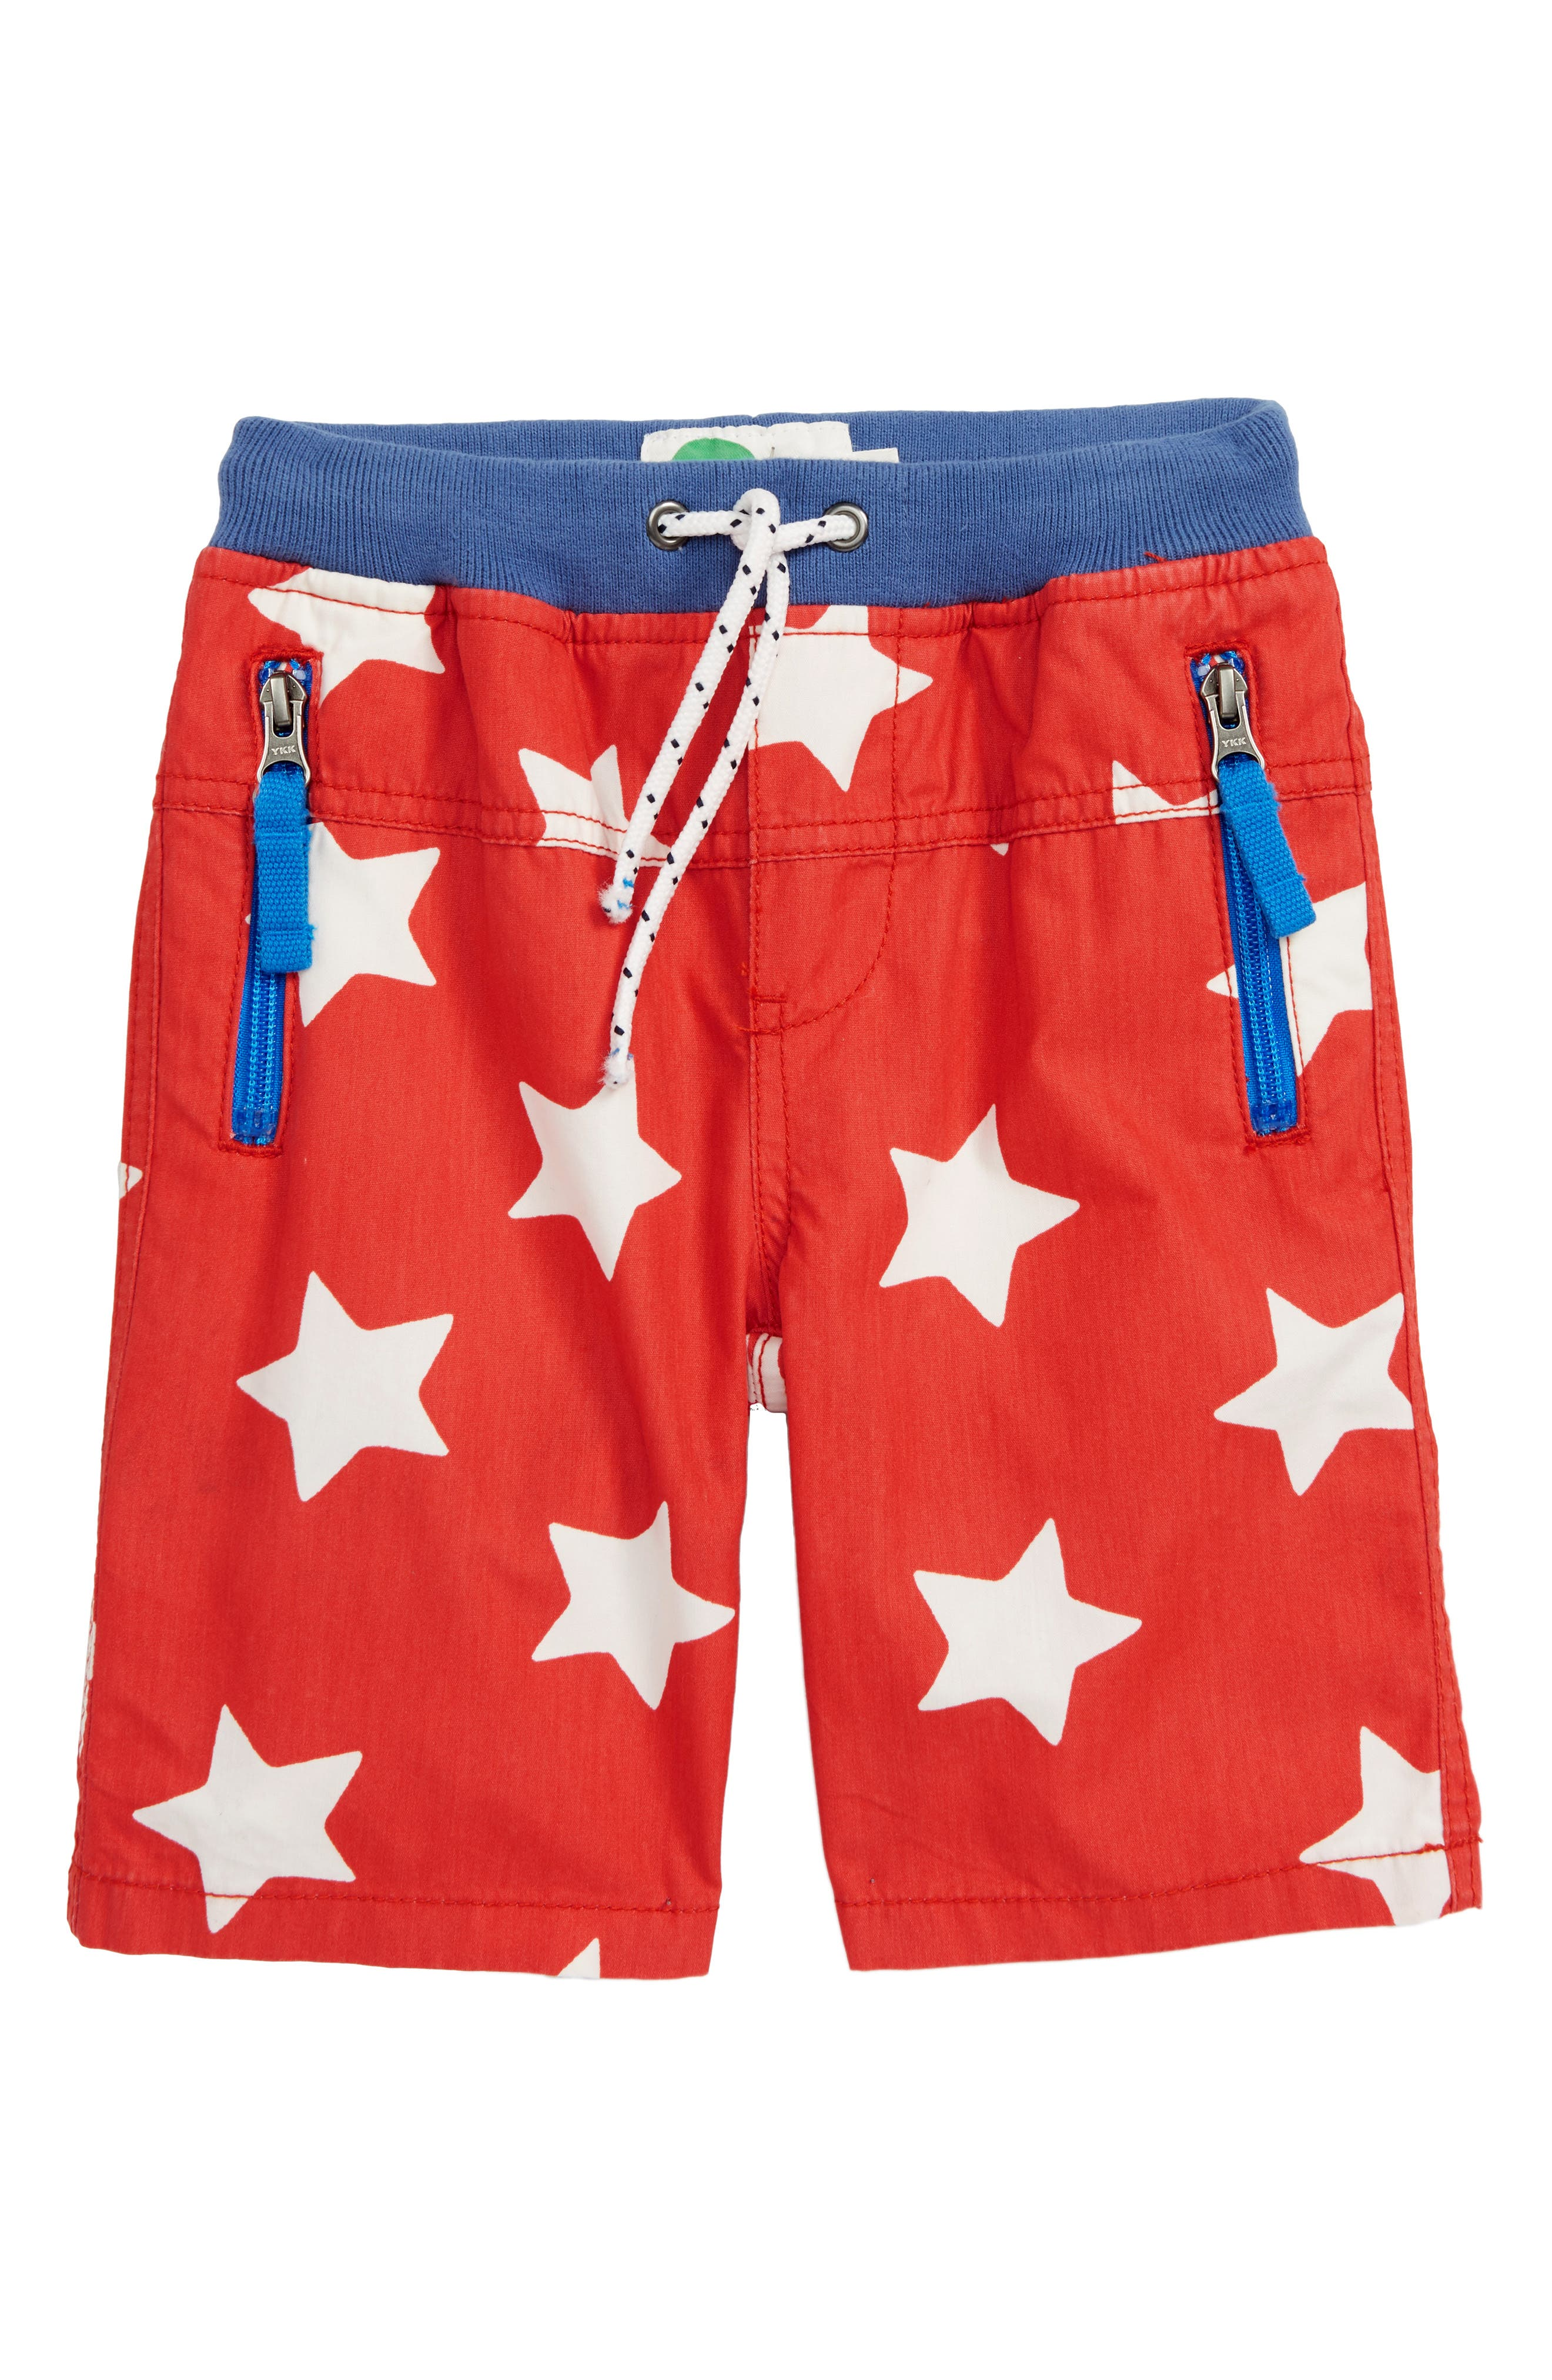 Star Adventure Shorts, Main, color, BEAM RED/ ECRU STAR